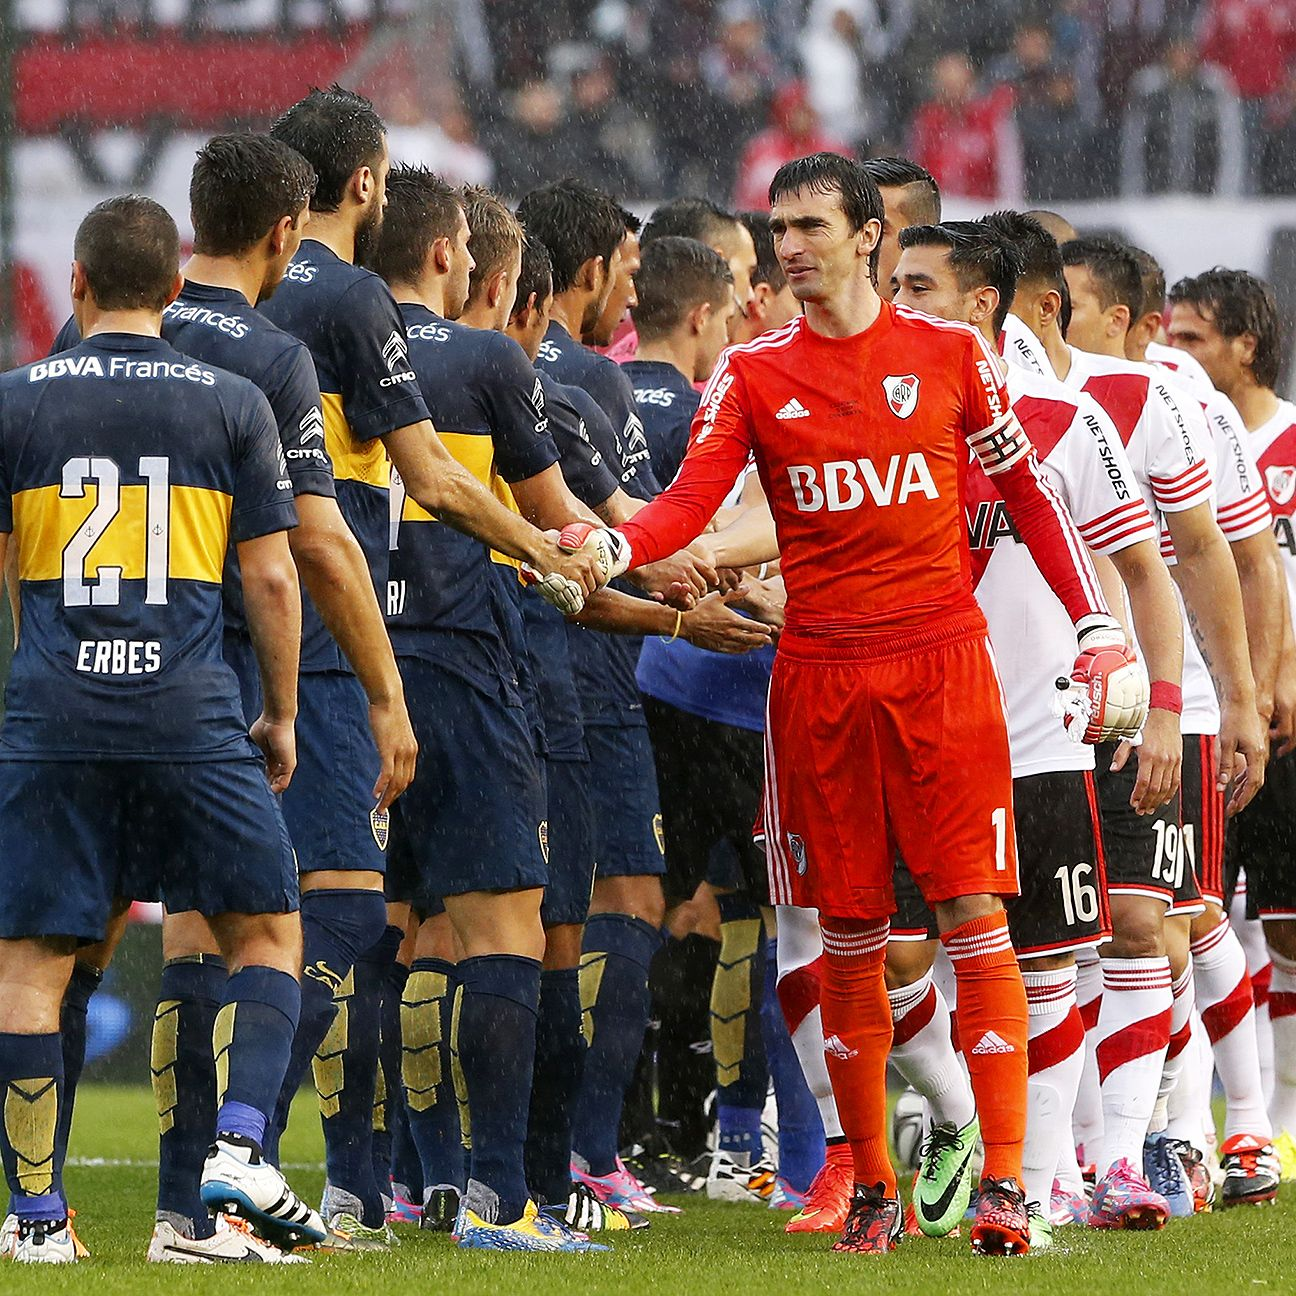 After a superb start to their domestic season, River Plate's recent form has taken a dip, starting with their soggy 1-1 draw versus Boca back in October.